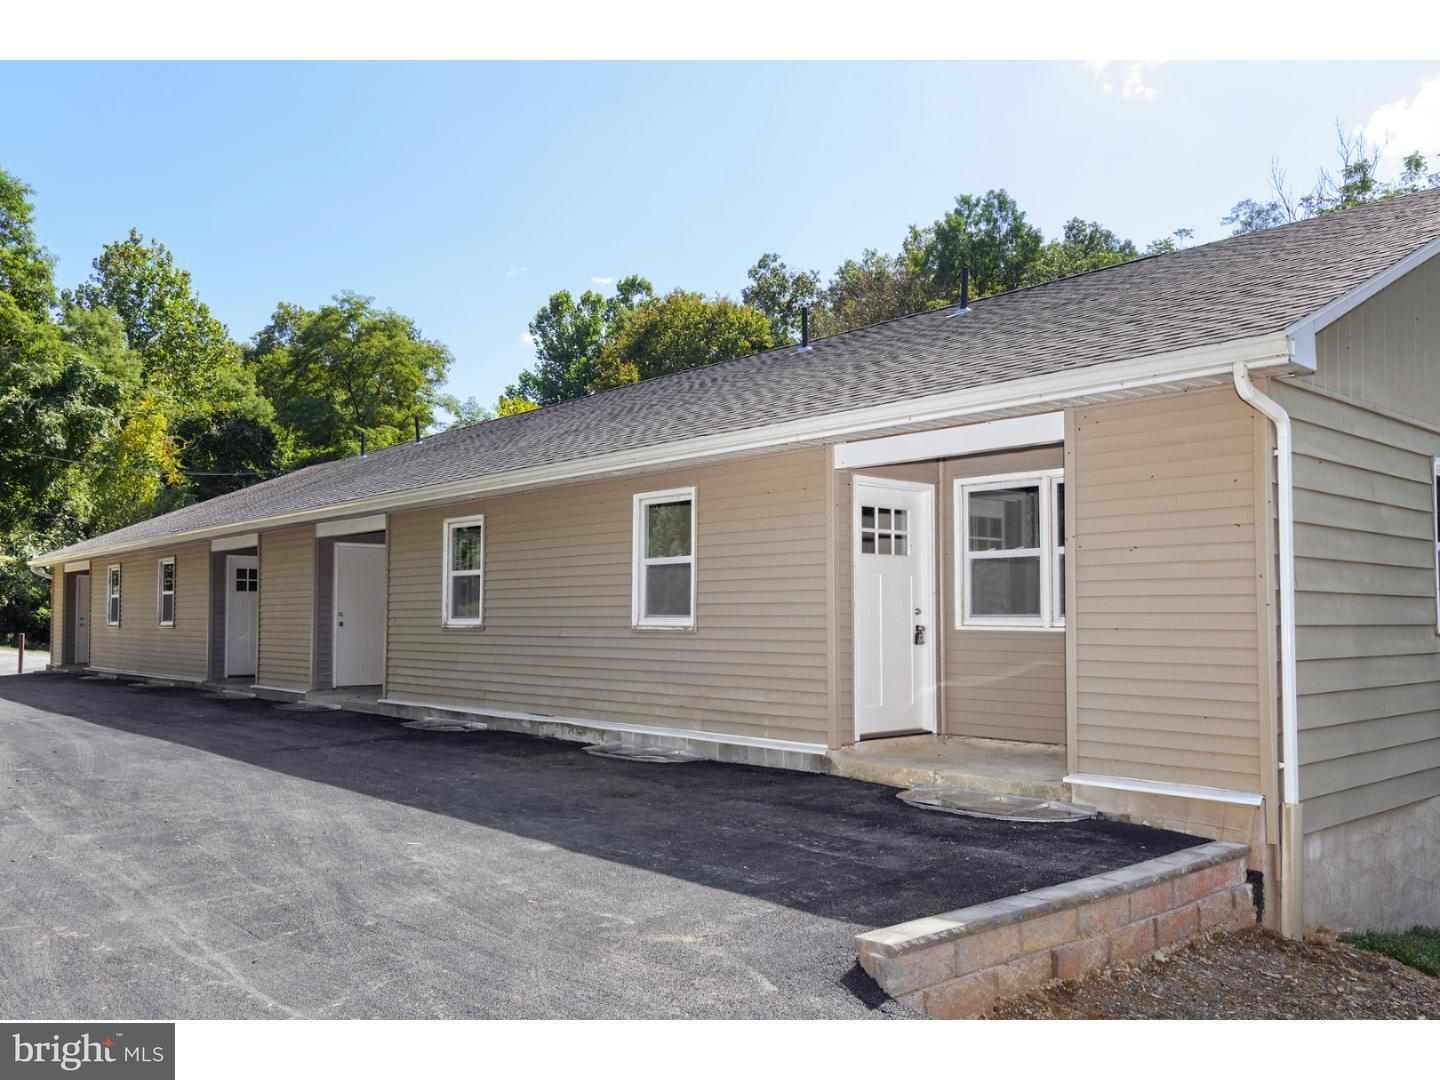 200 N BUNKER HILL RD, WOMELSDORF - Listed at $890, WOMELSDORF